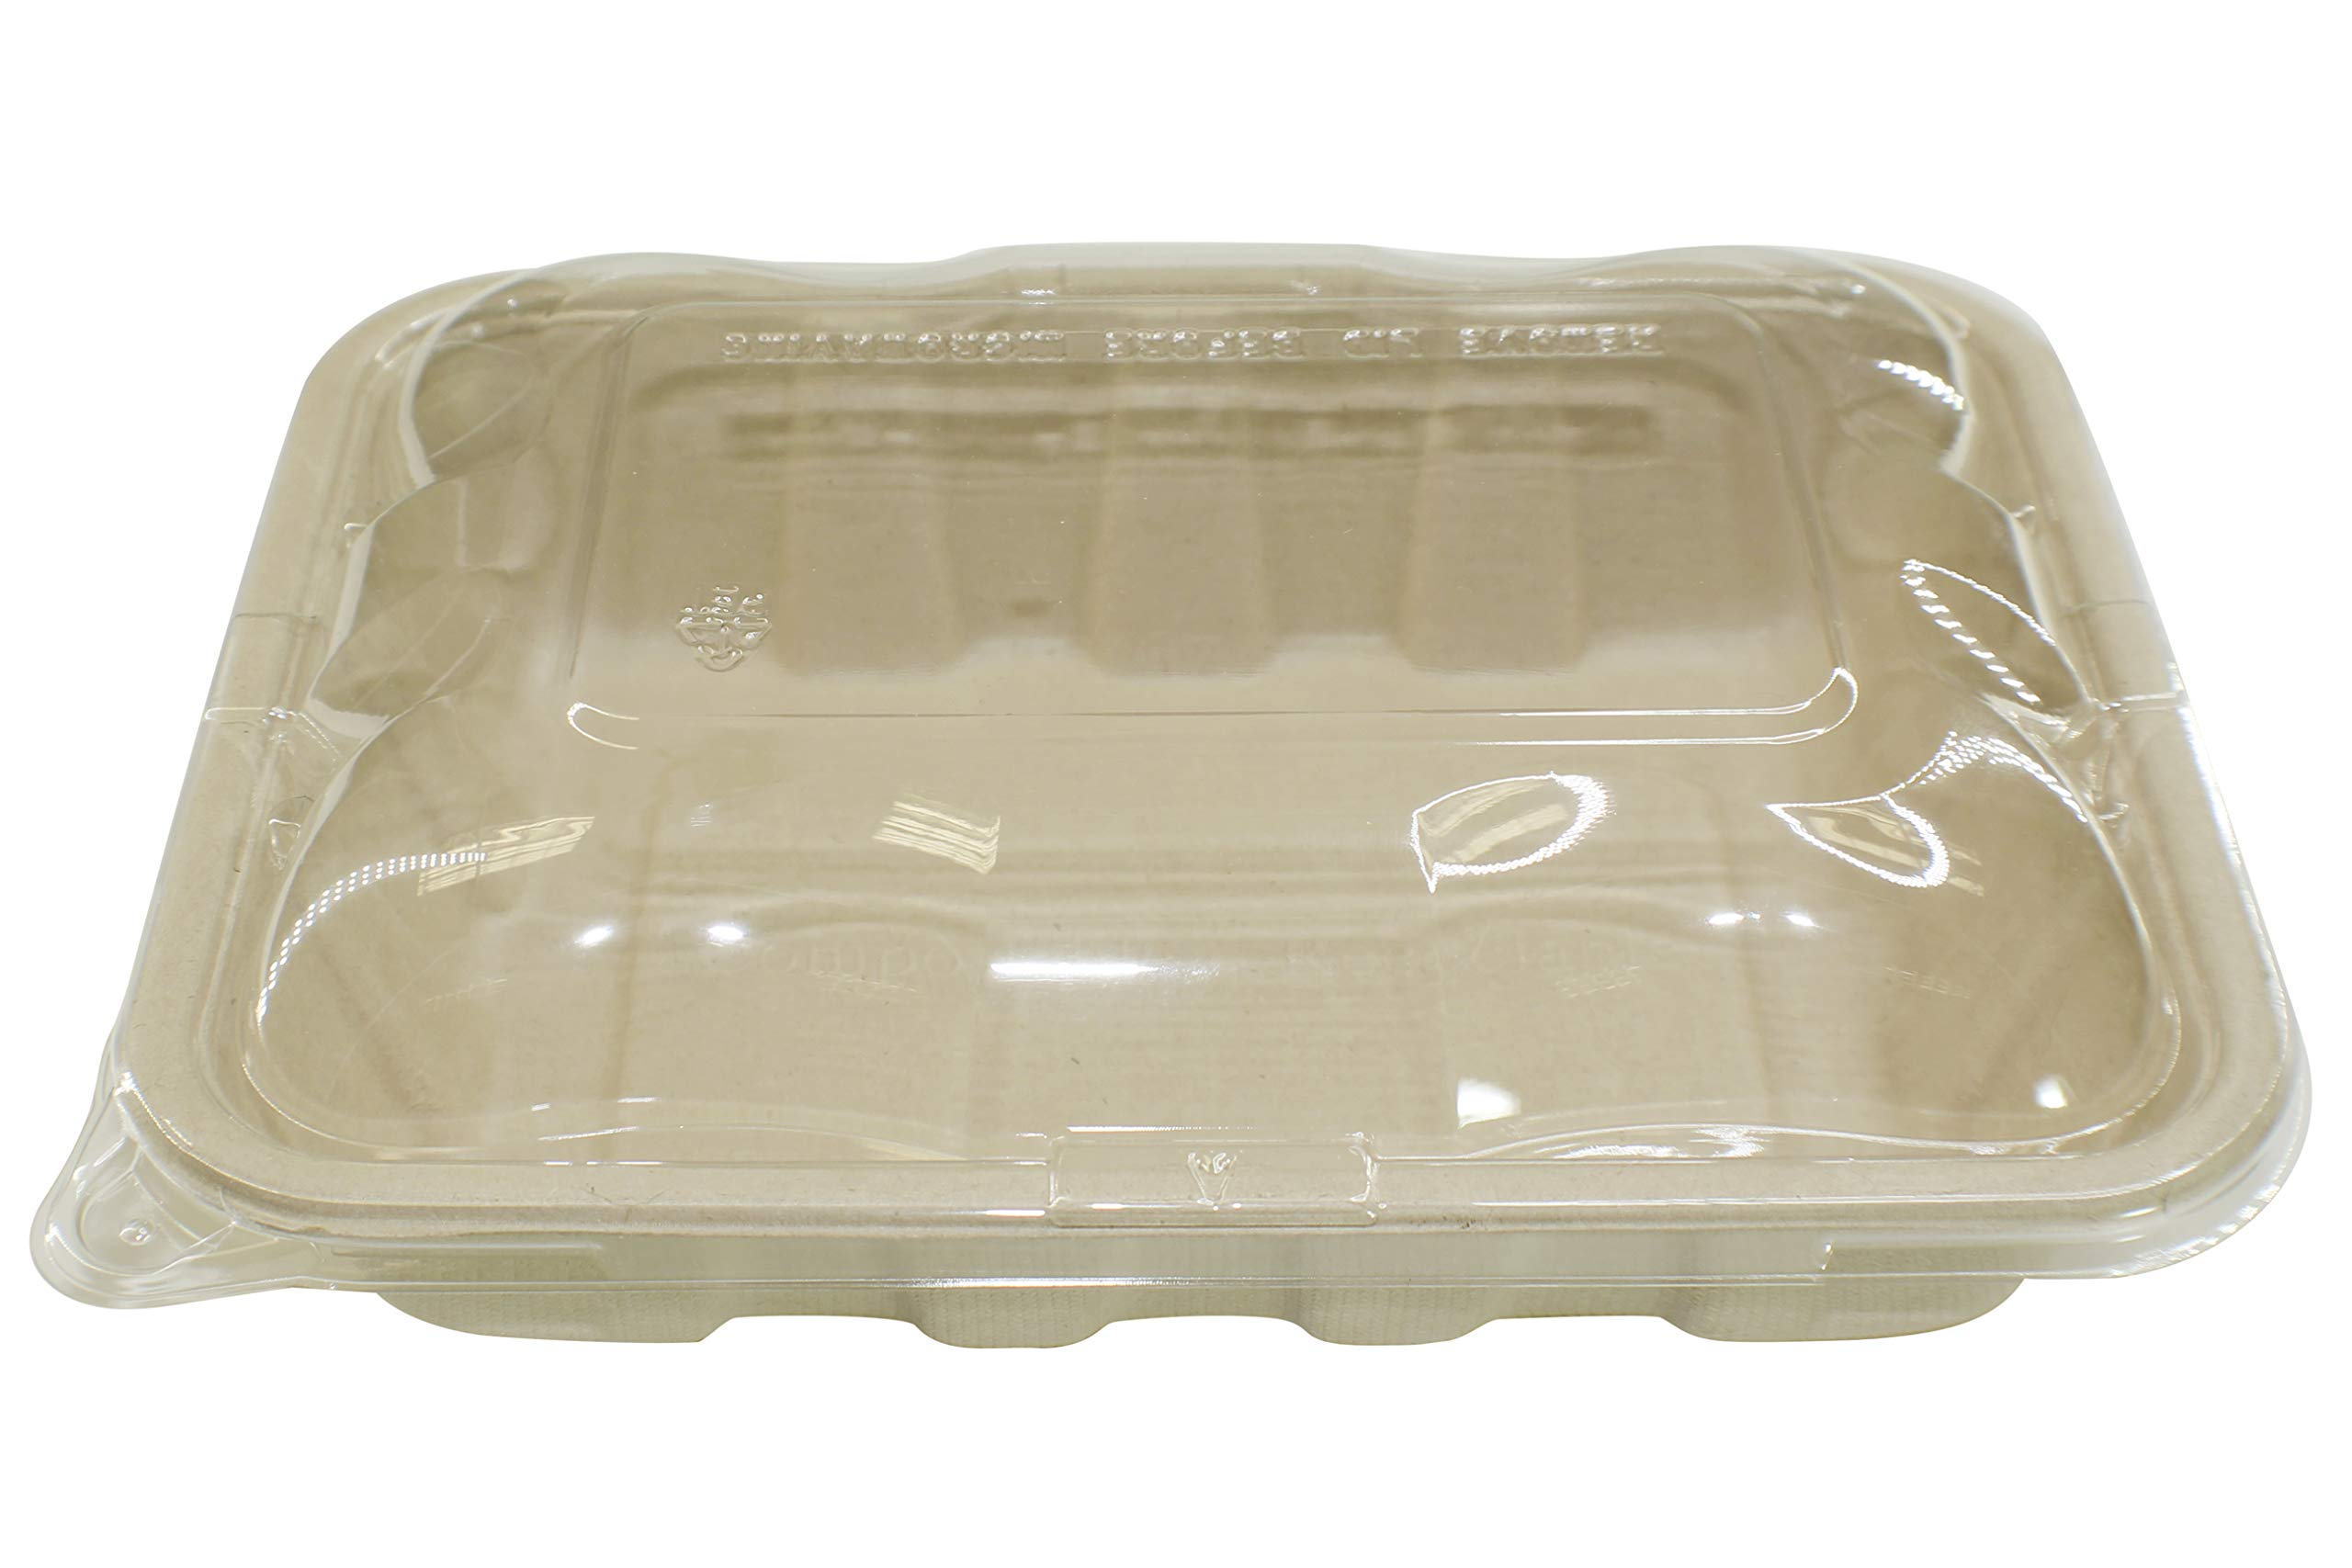 [400 SETS] 32oz Compostable Eco Friendly Container Trays with Lids - Deep Container made from Plant Fibers for Meal Prep Dinnerware Plates Catering Bento Boxes Takeout 100% by products